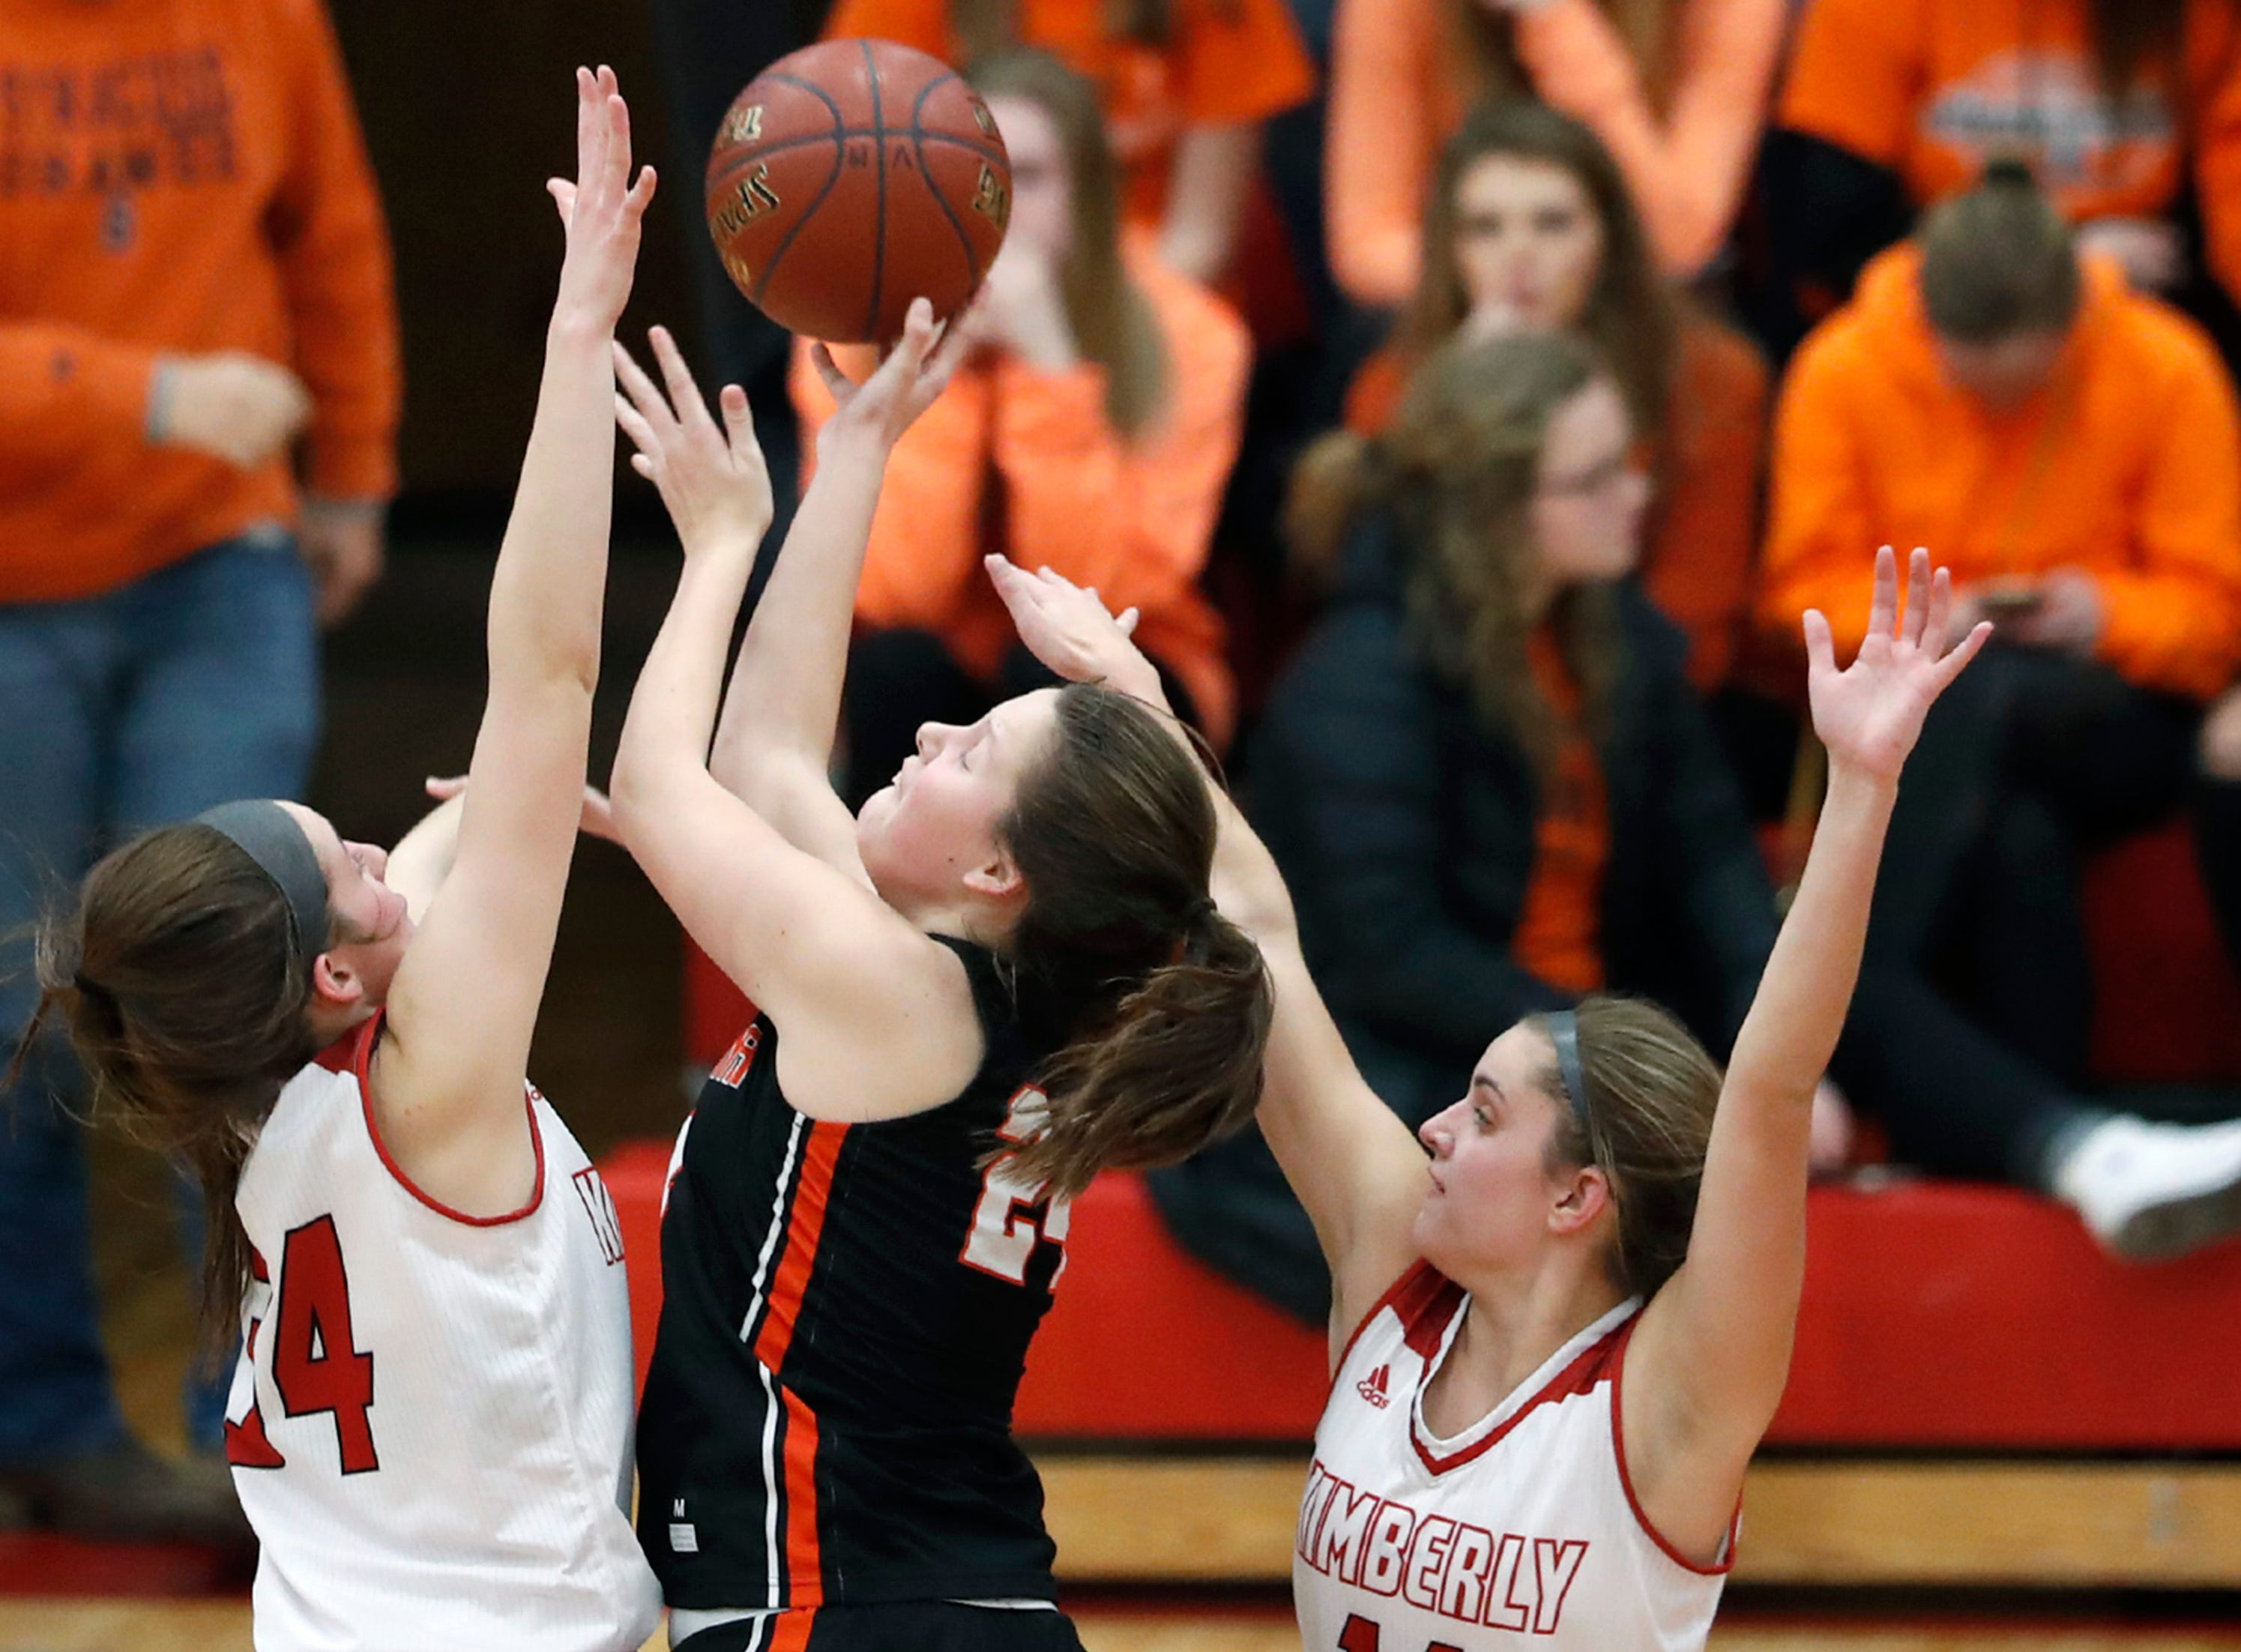 Kimberly High School's Maddy Schreiber and Taylor Hietpas defend against Kaukauna High School's Chloe VanZeeland Friday, Dec. 7, 2018, in Kimberly, Wis.